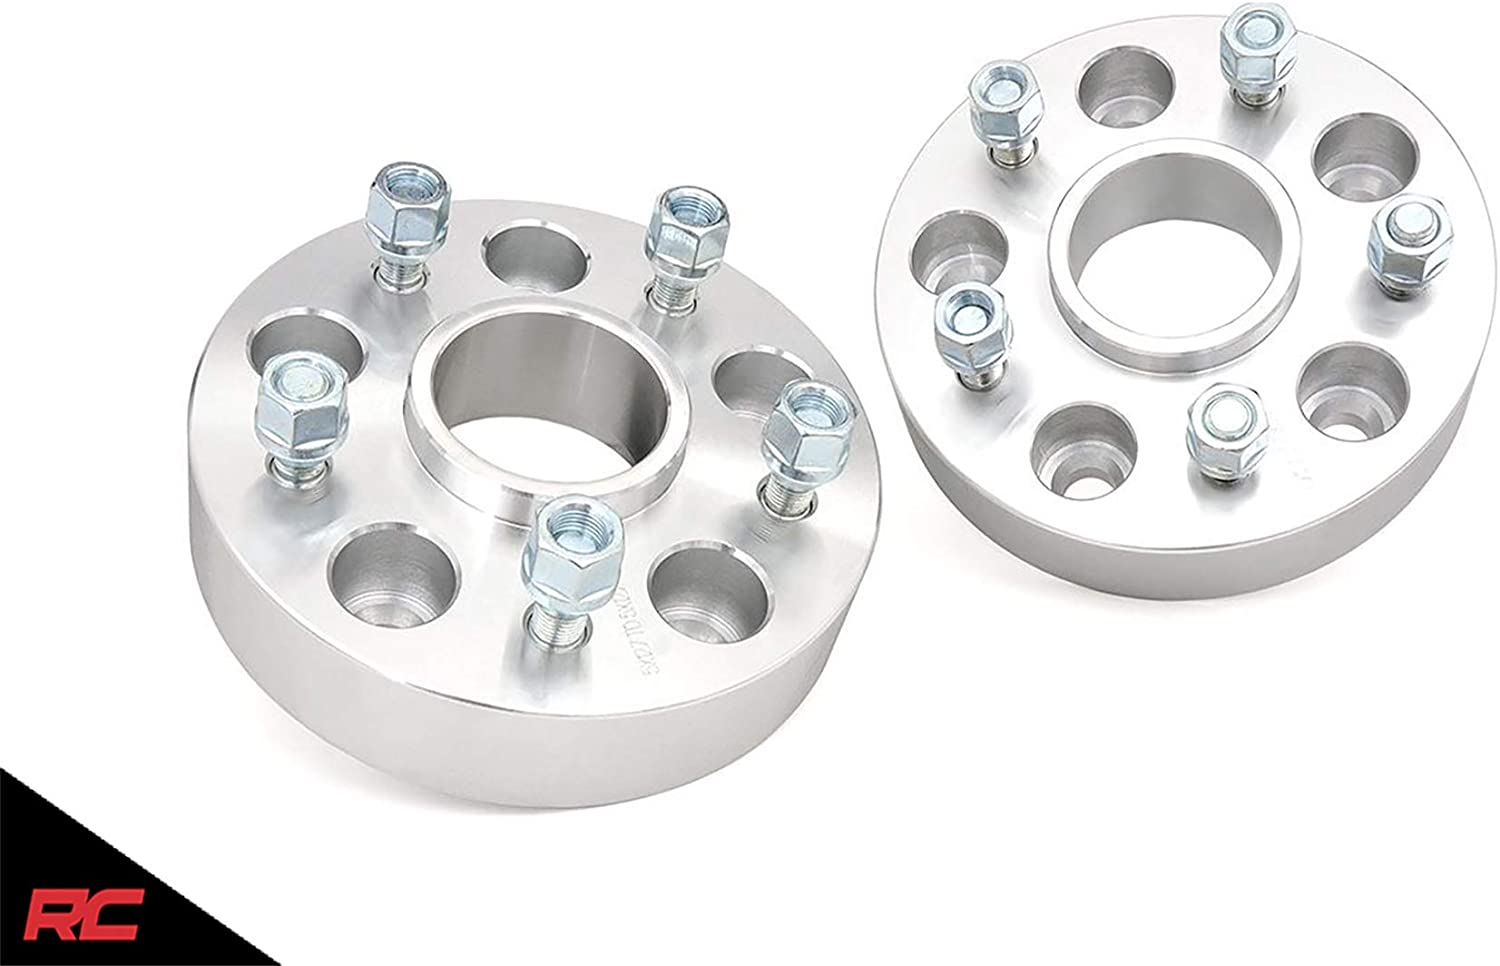 Rough Country 10085 2 Wheel Spacers | Pair | fits Gladiator JT Aluminum 5x5 2018-2020 Jeep Wrangler JL